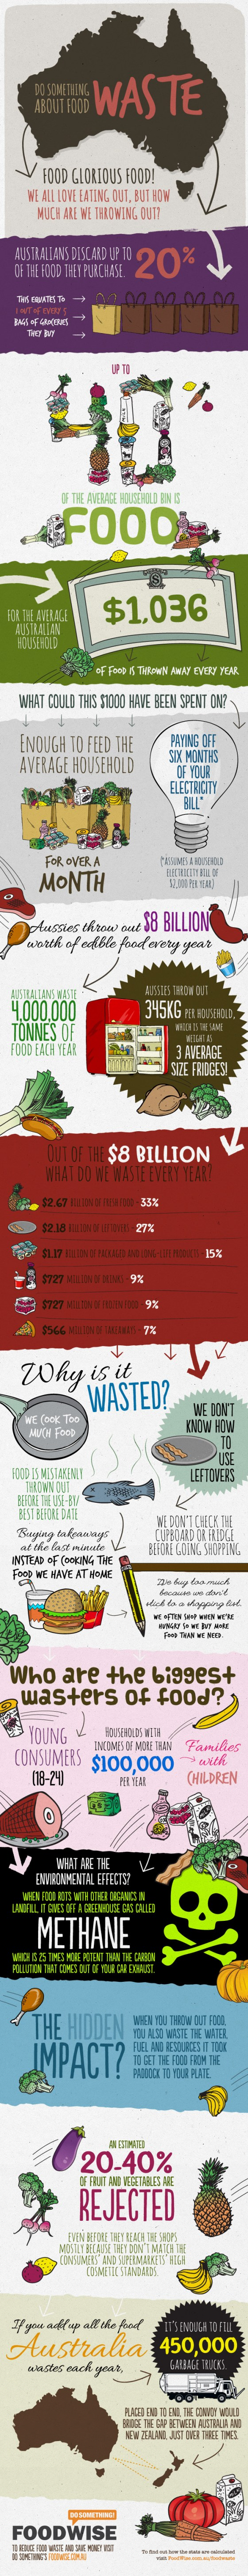 foodwaste-infographic